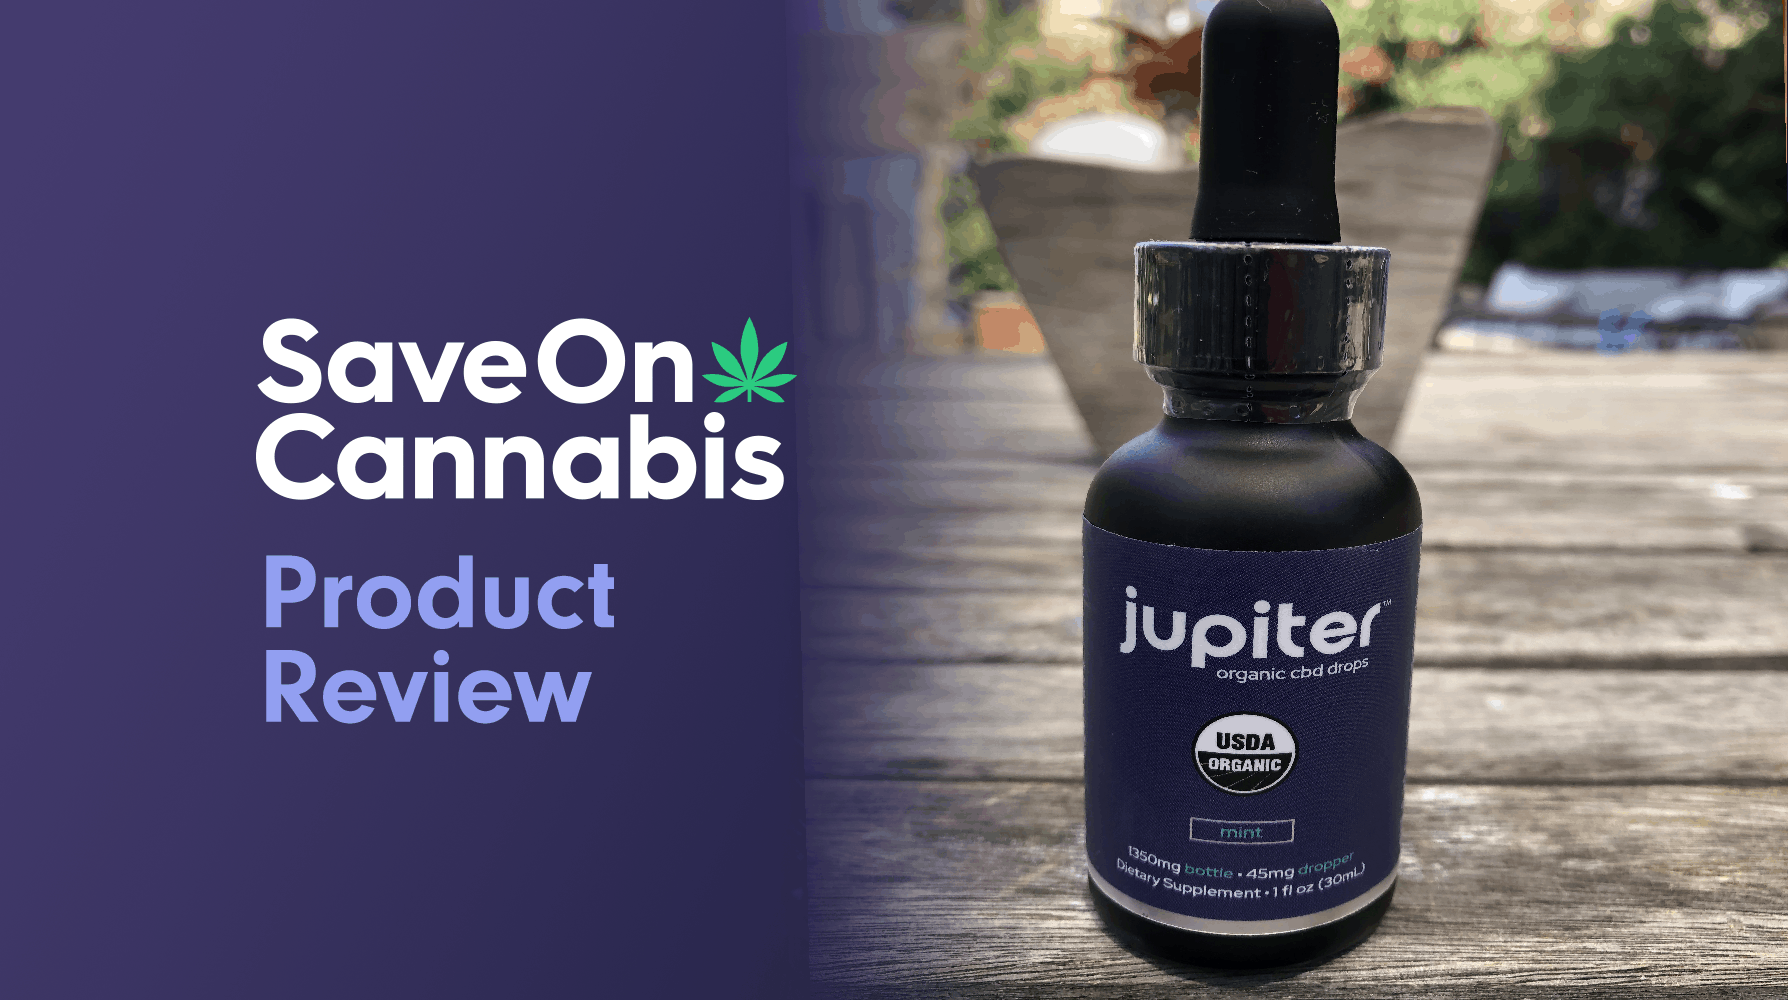 jupiter organic cbd drops mint 1350 mg review save on cannabis website